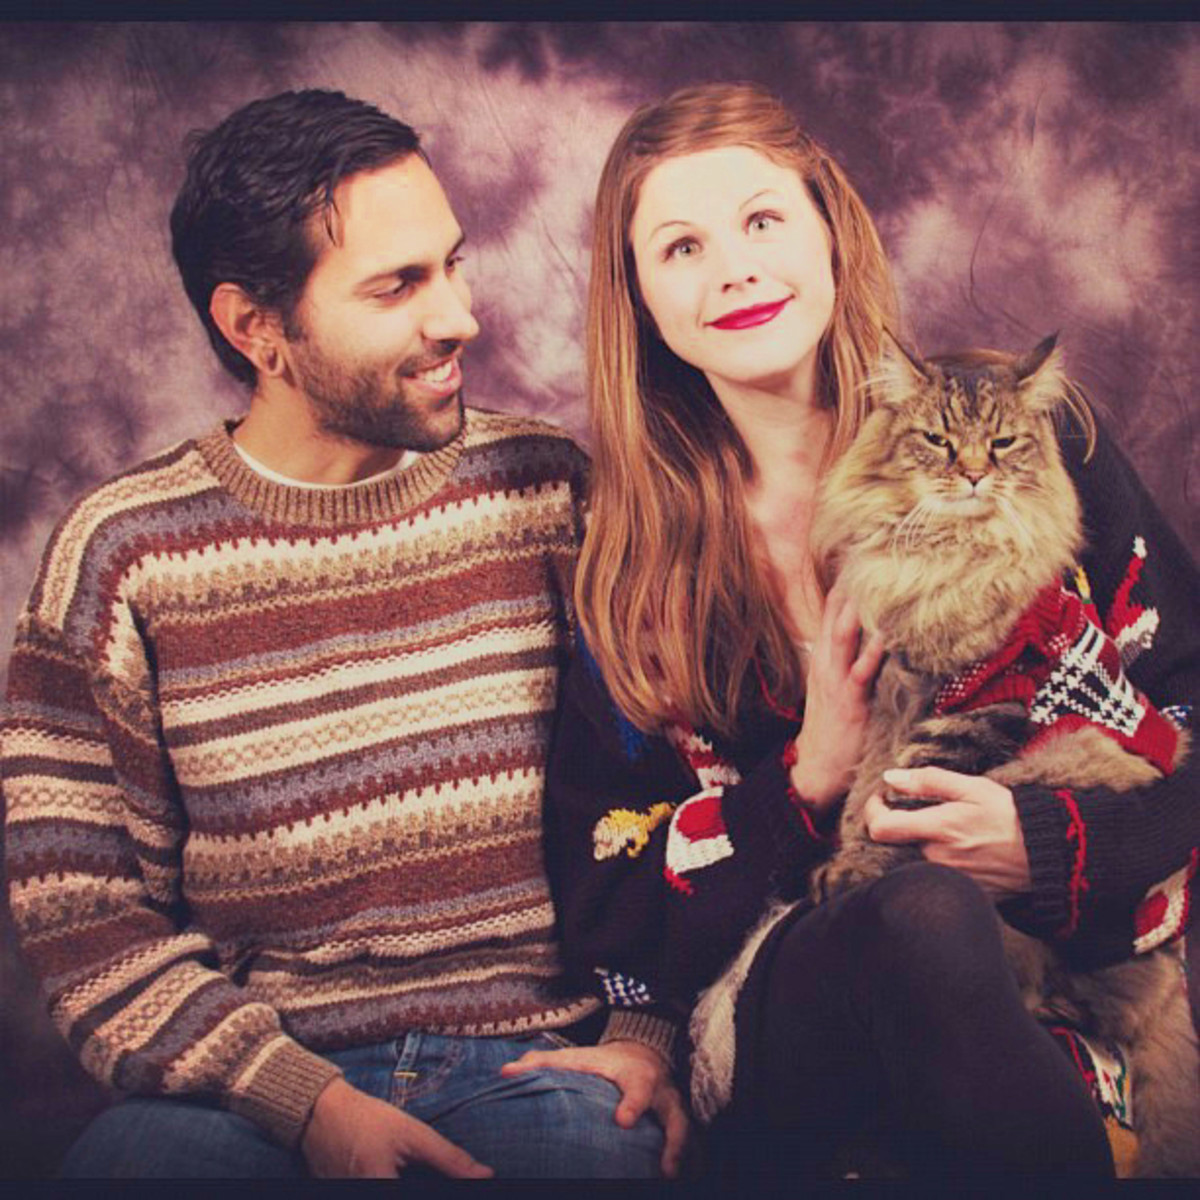 No family portrait is complete without a cat in a sweater.